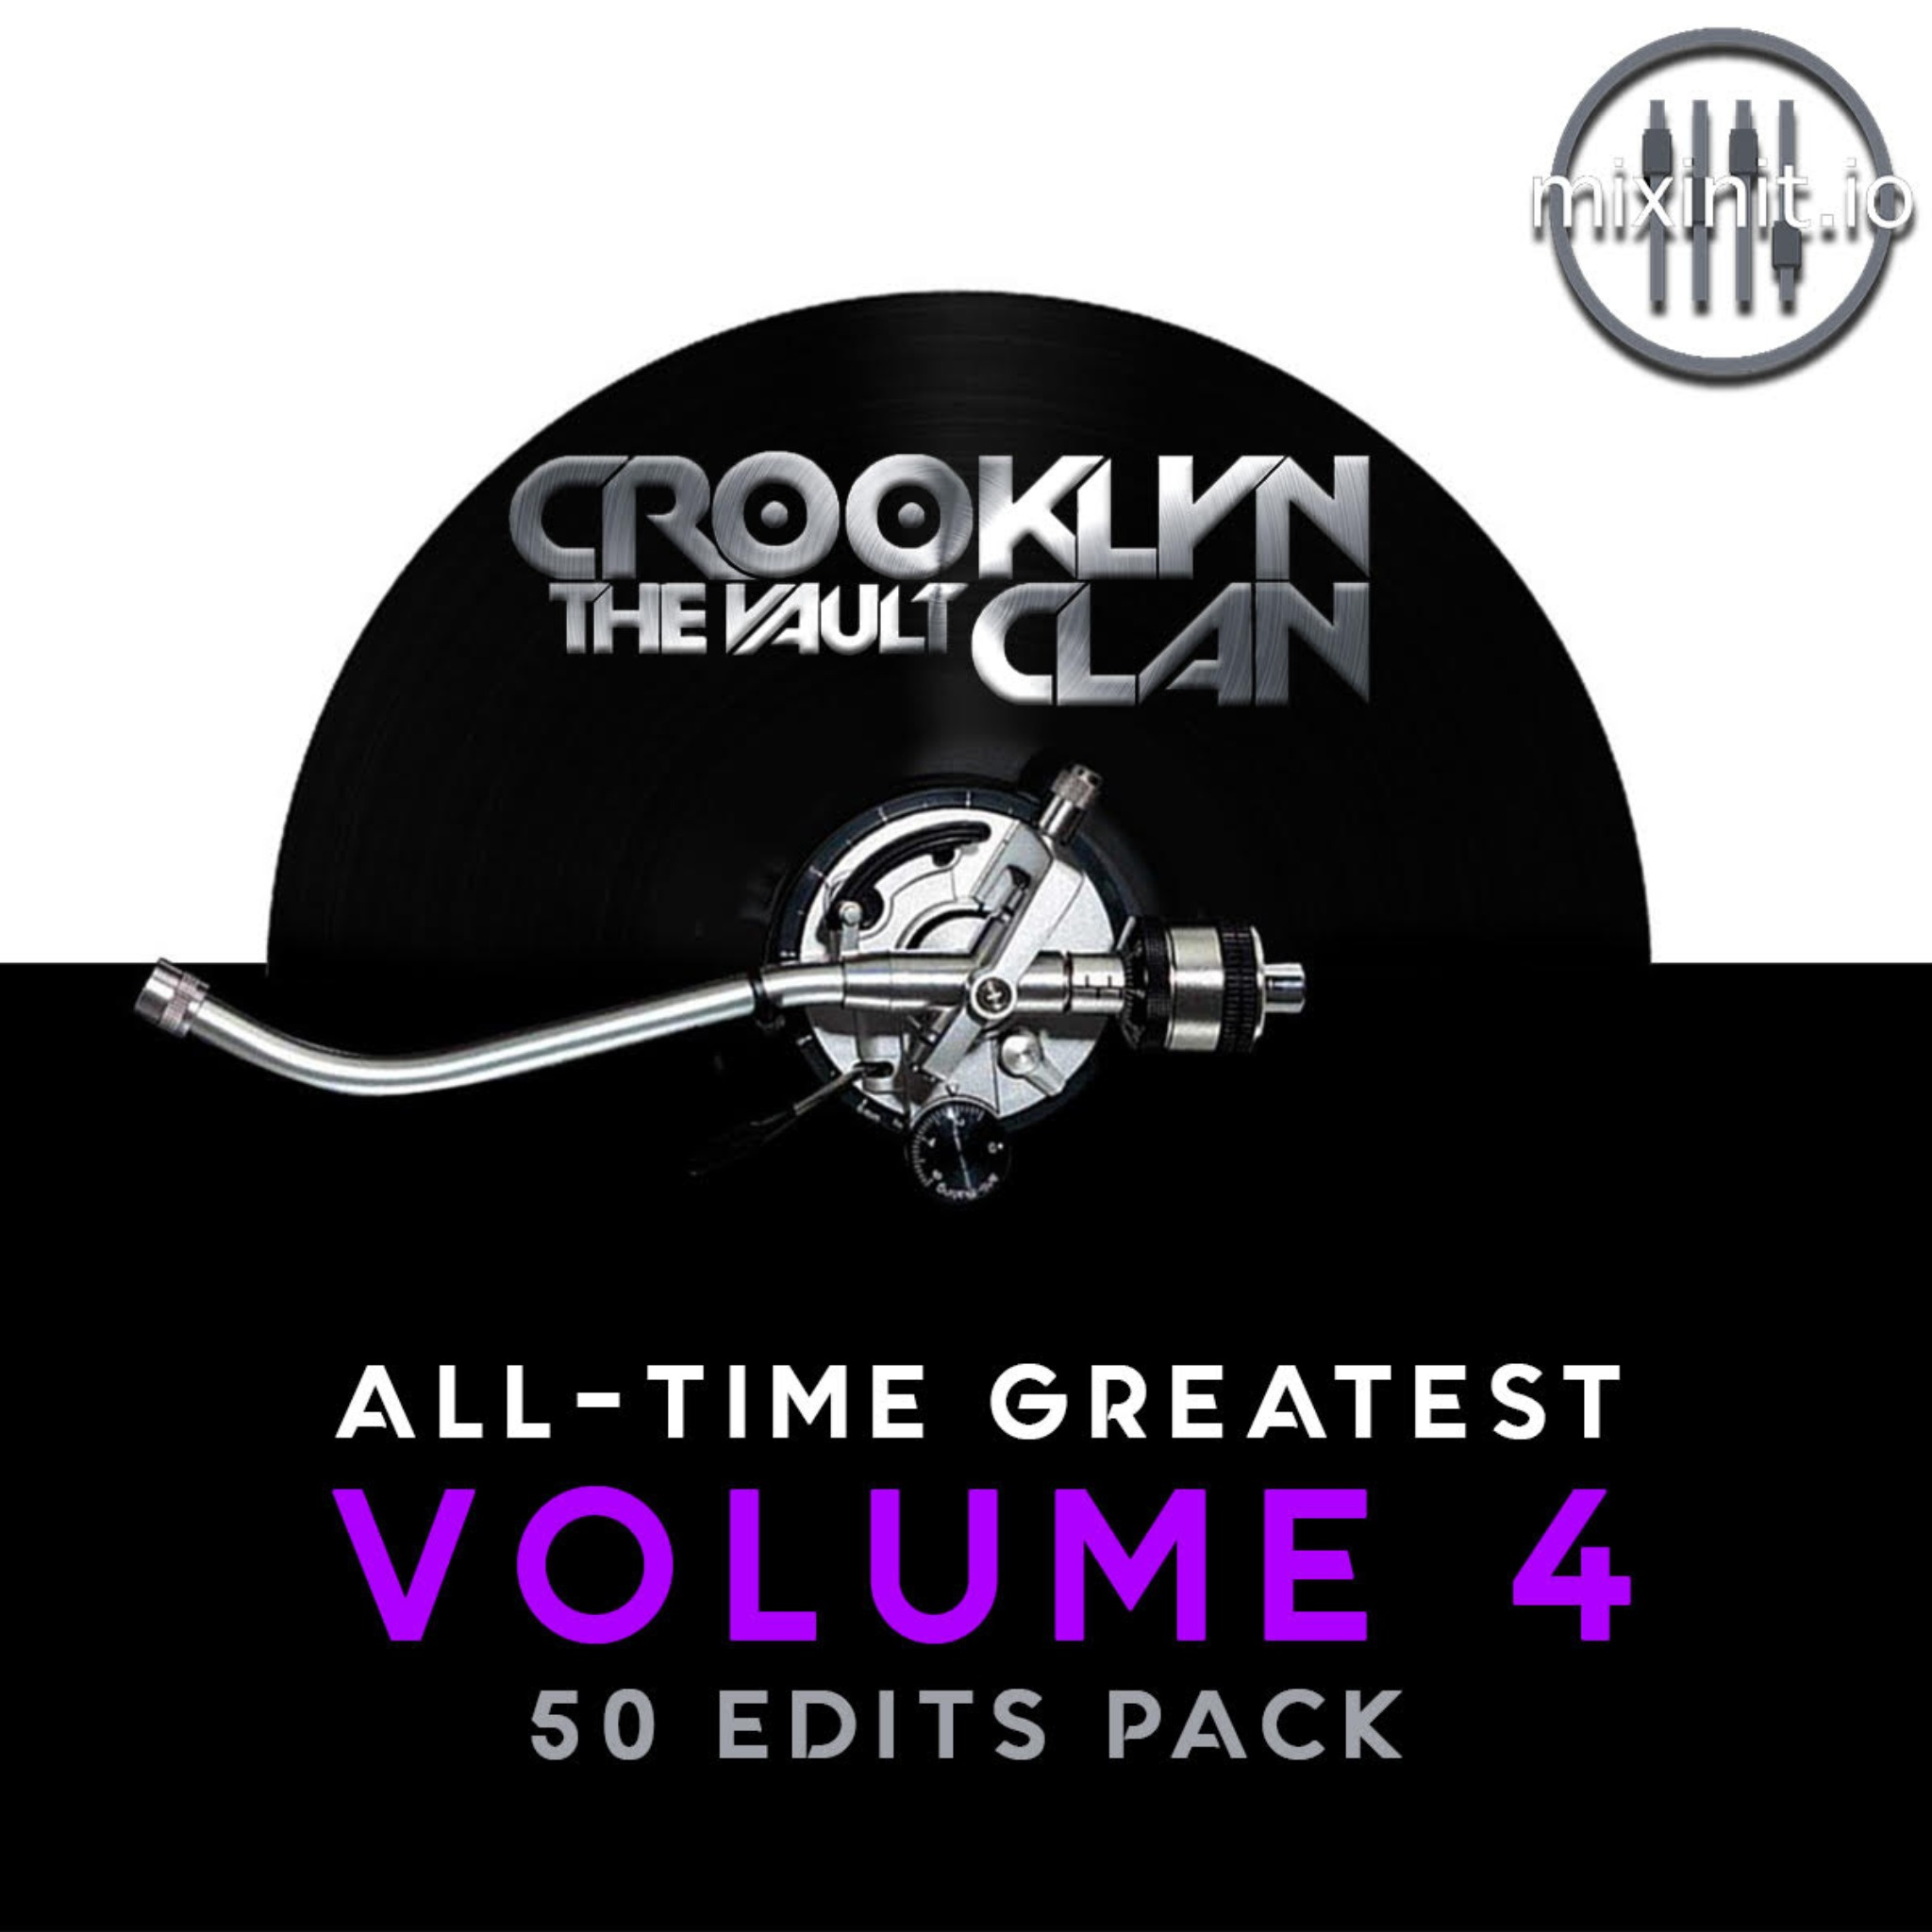 Best of the Classic Crooklyn Clan Vault Vol. 4 (Various Editors)